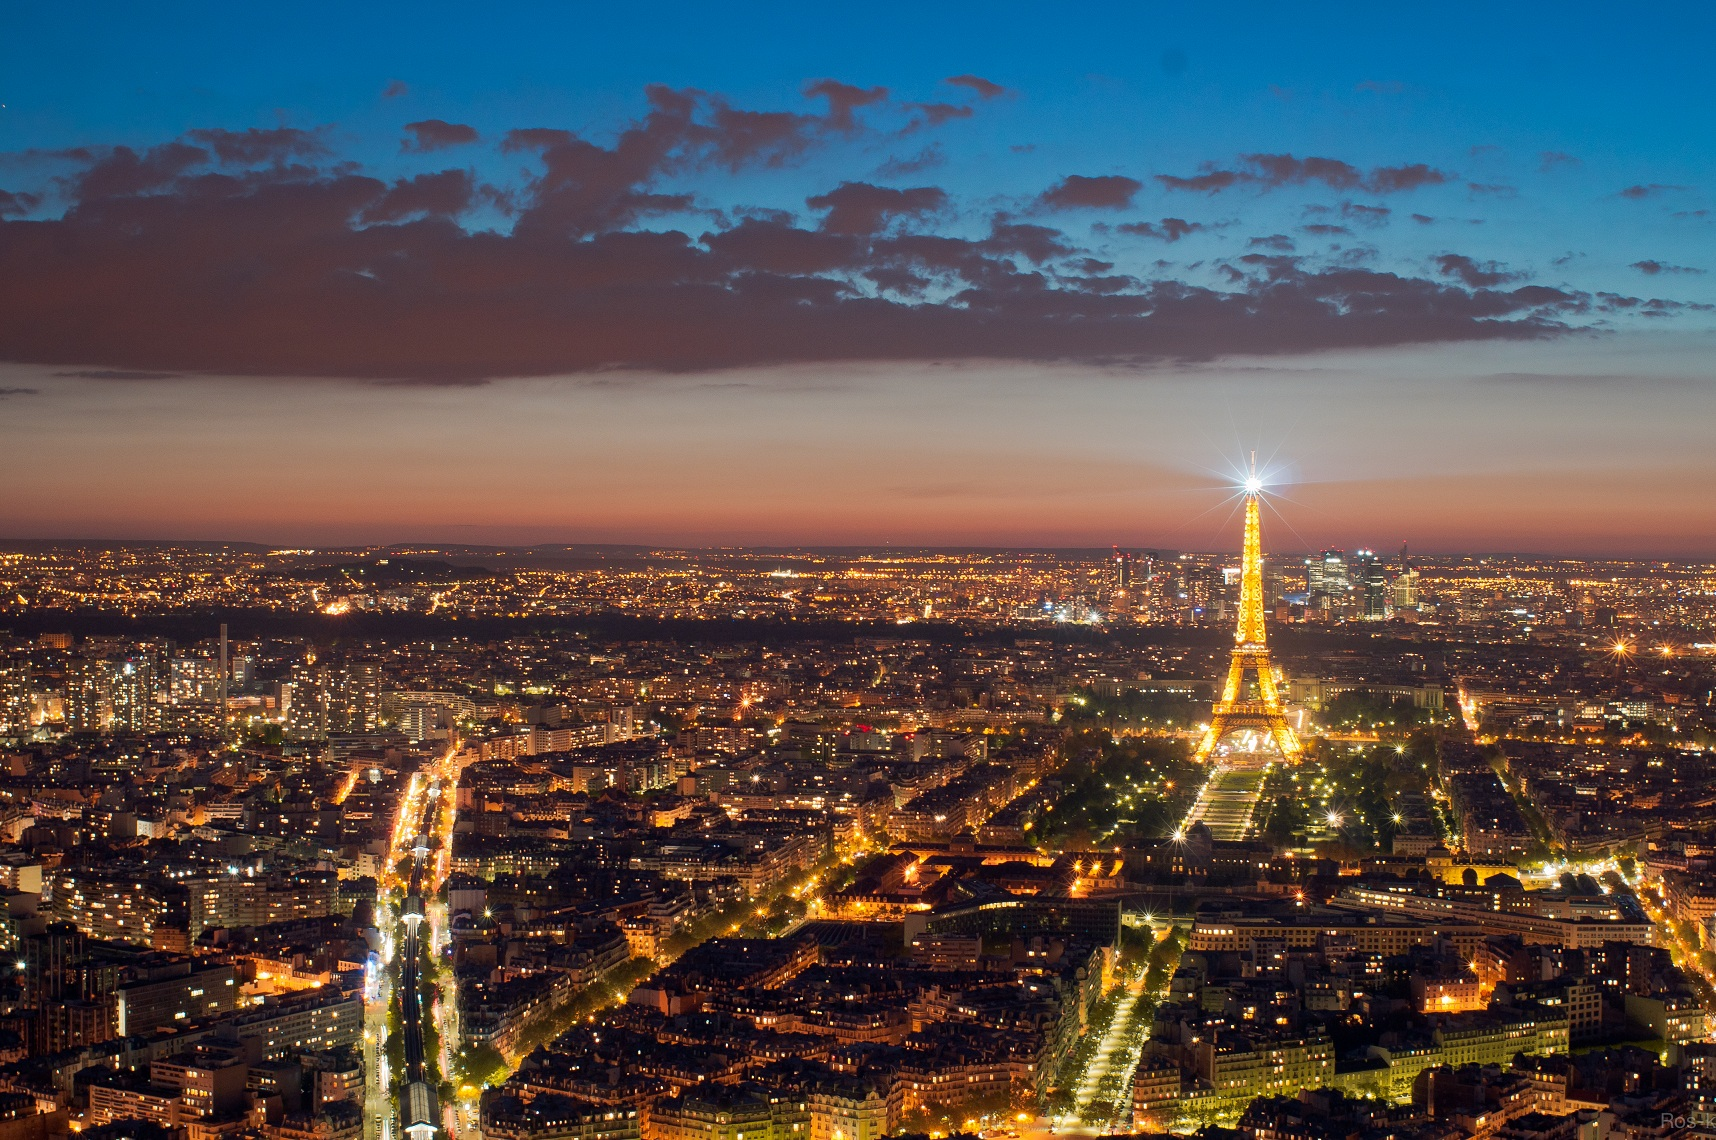 Eiffel_Tower_from_the_Tour_Montparnasse,_1_May_2012_N1 red.jpg